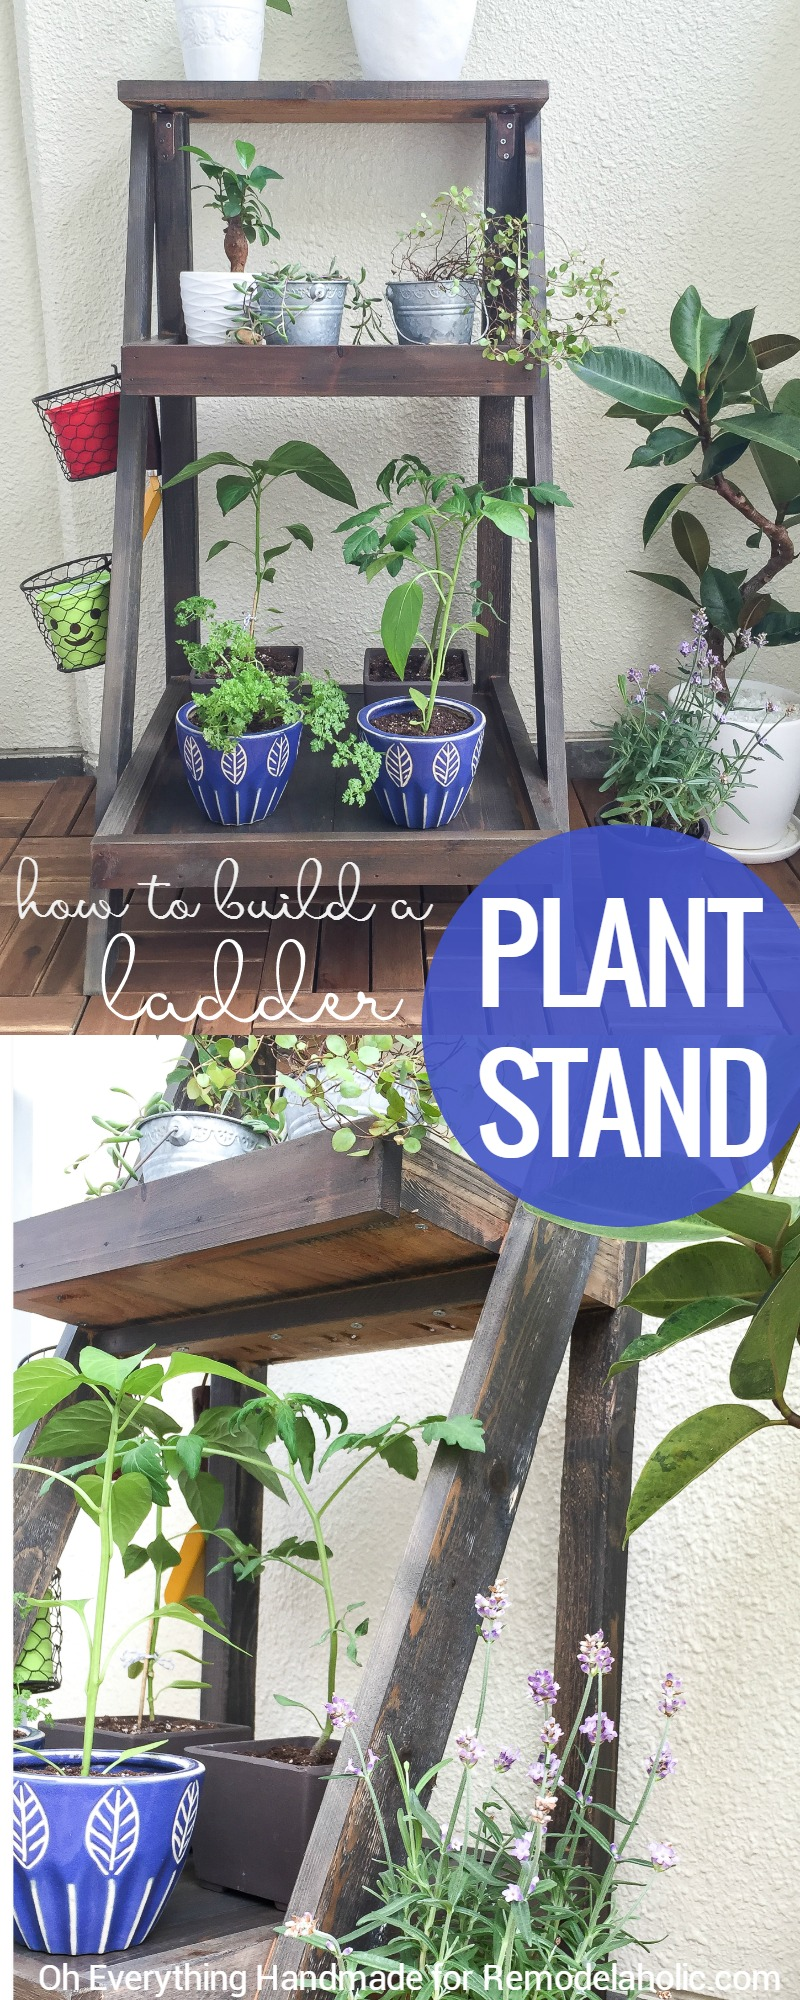 Remodelaholic tutorial how to build a ladder plant stand - Ladder plant stand plans free ...